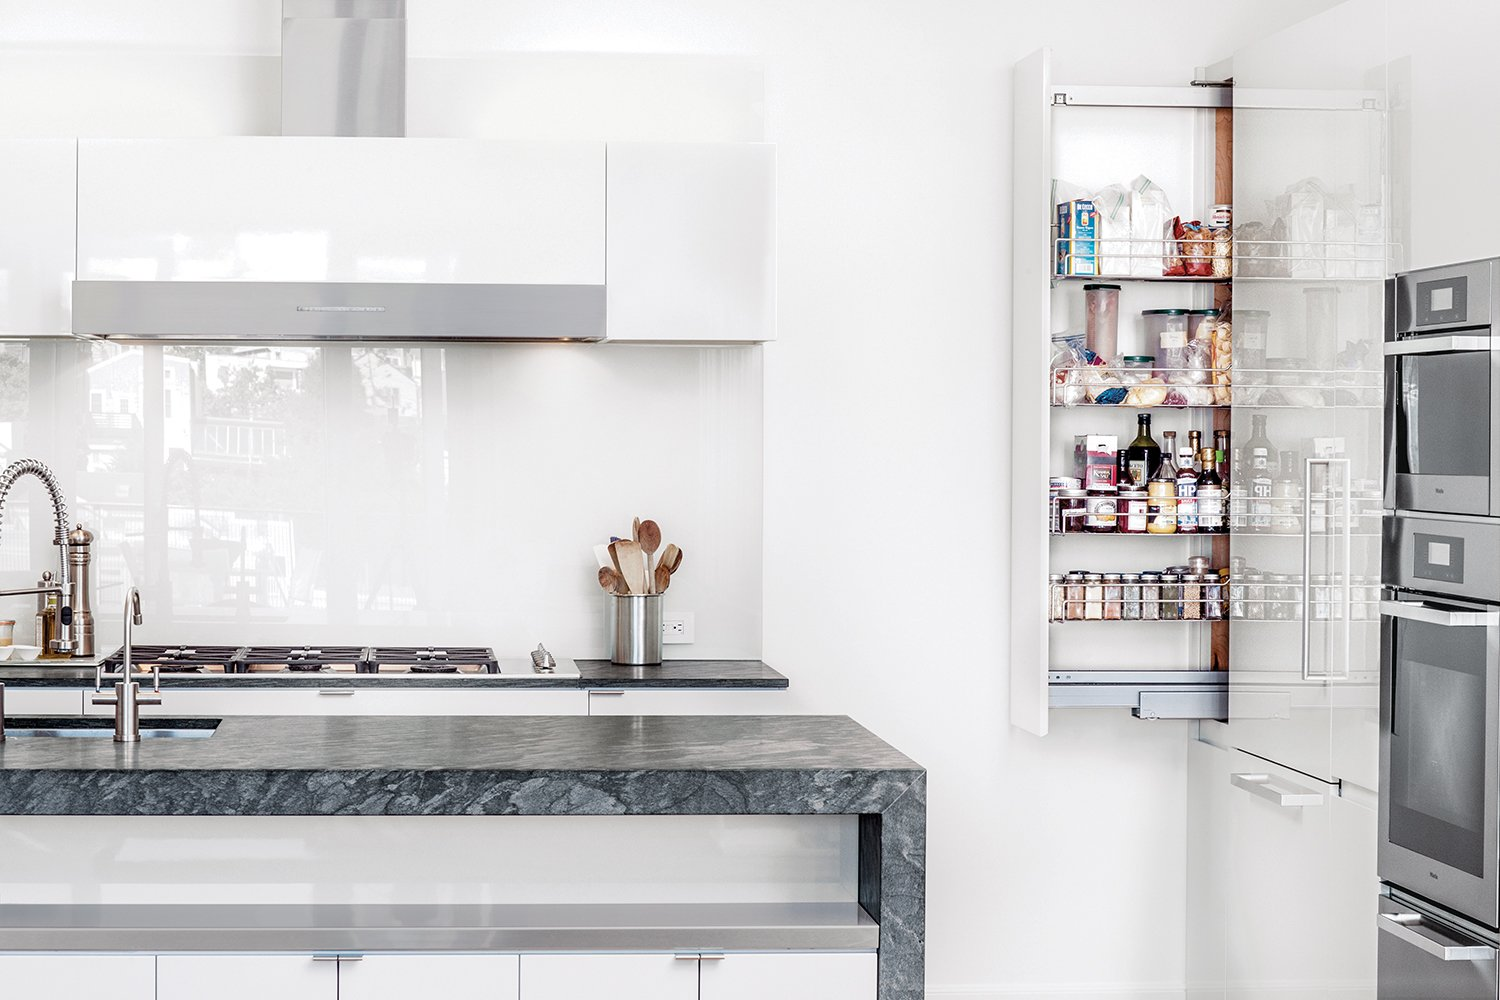 Painters Accomplished The High Gloss Finish On The Cabinets Of A Kitchen In  San Francisco